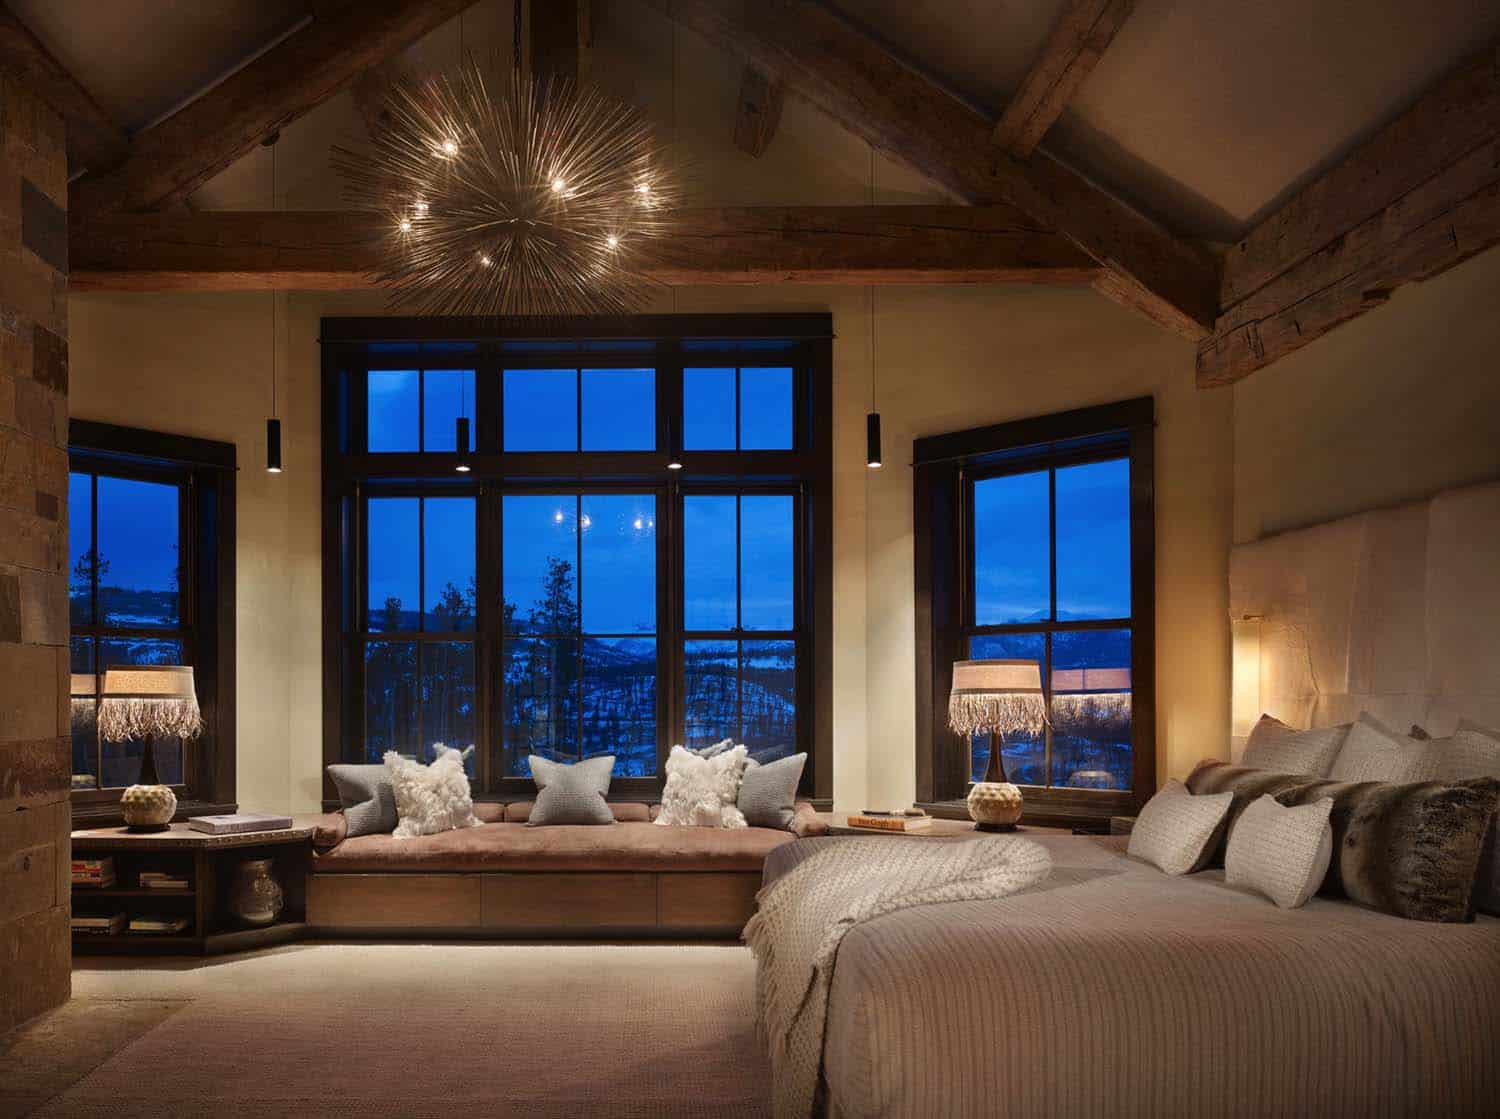 12 Amazing rustic bedrooms styled to feel like a cozy getaway